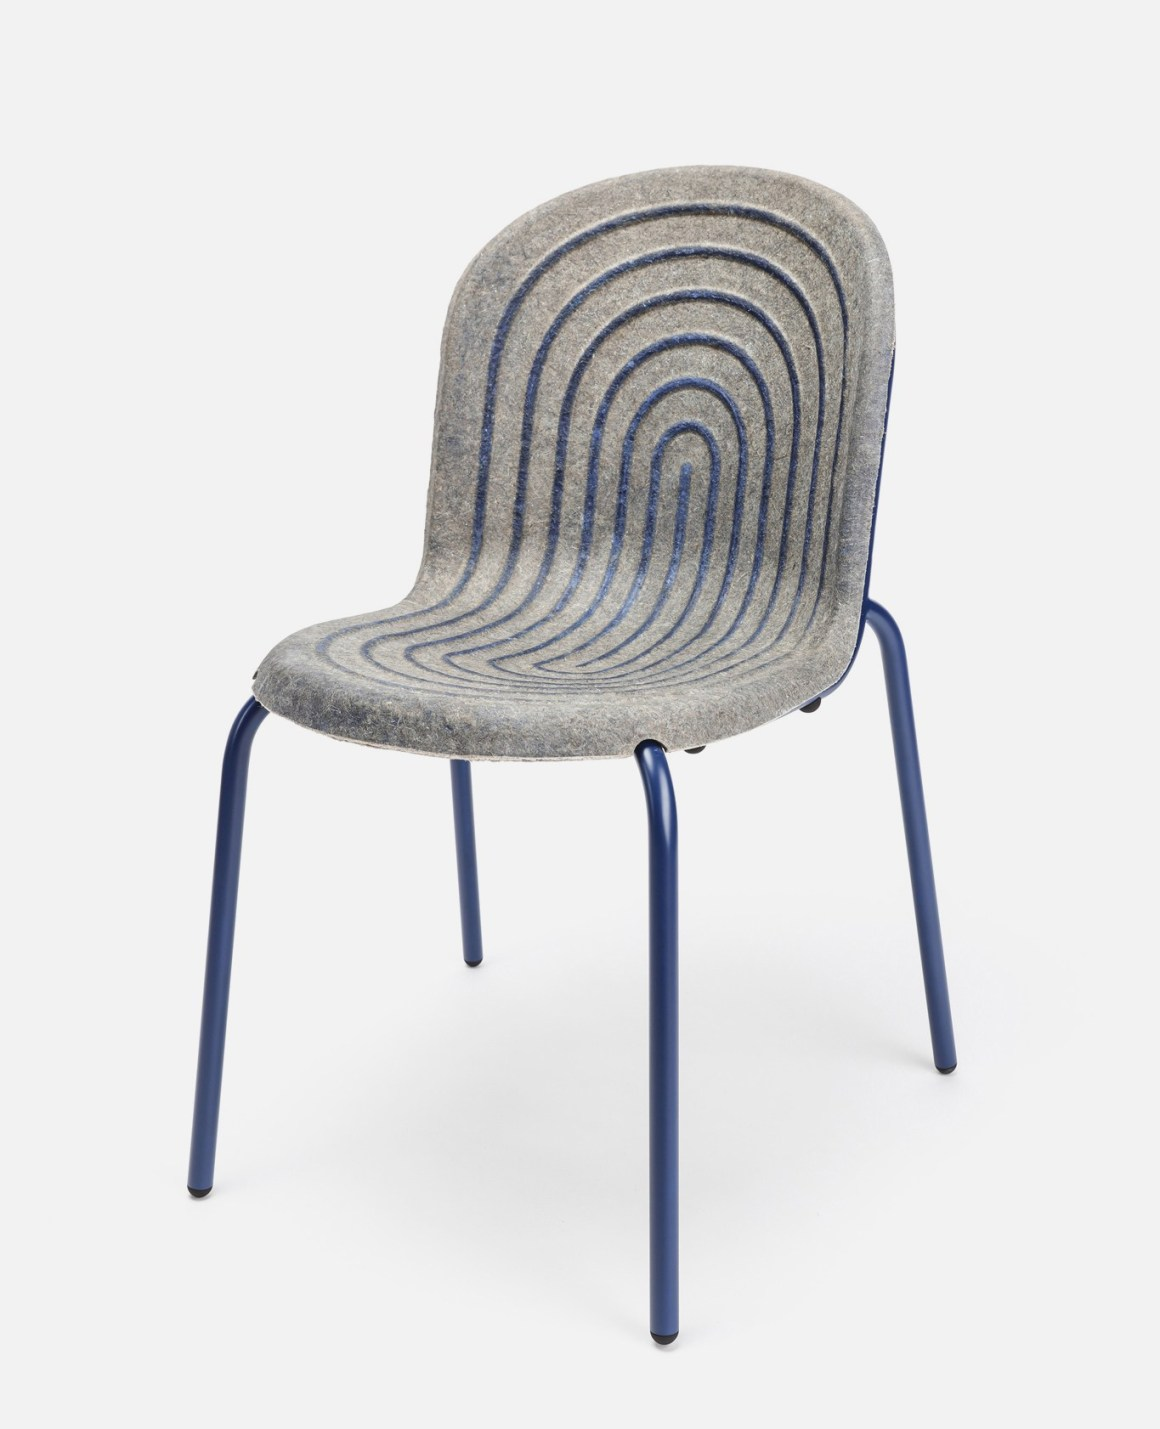 Chair with seating made with hemp panel bonded together with a casein-based glue.